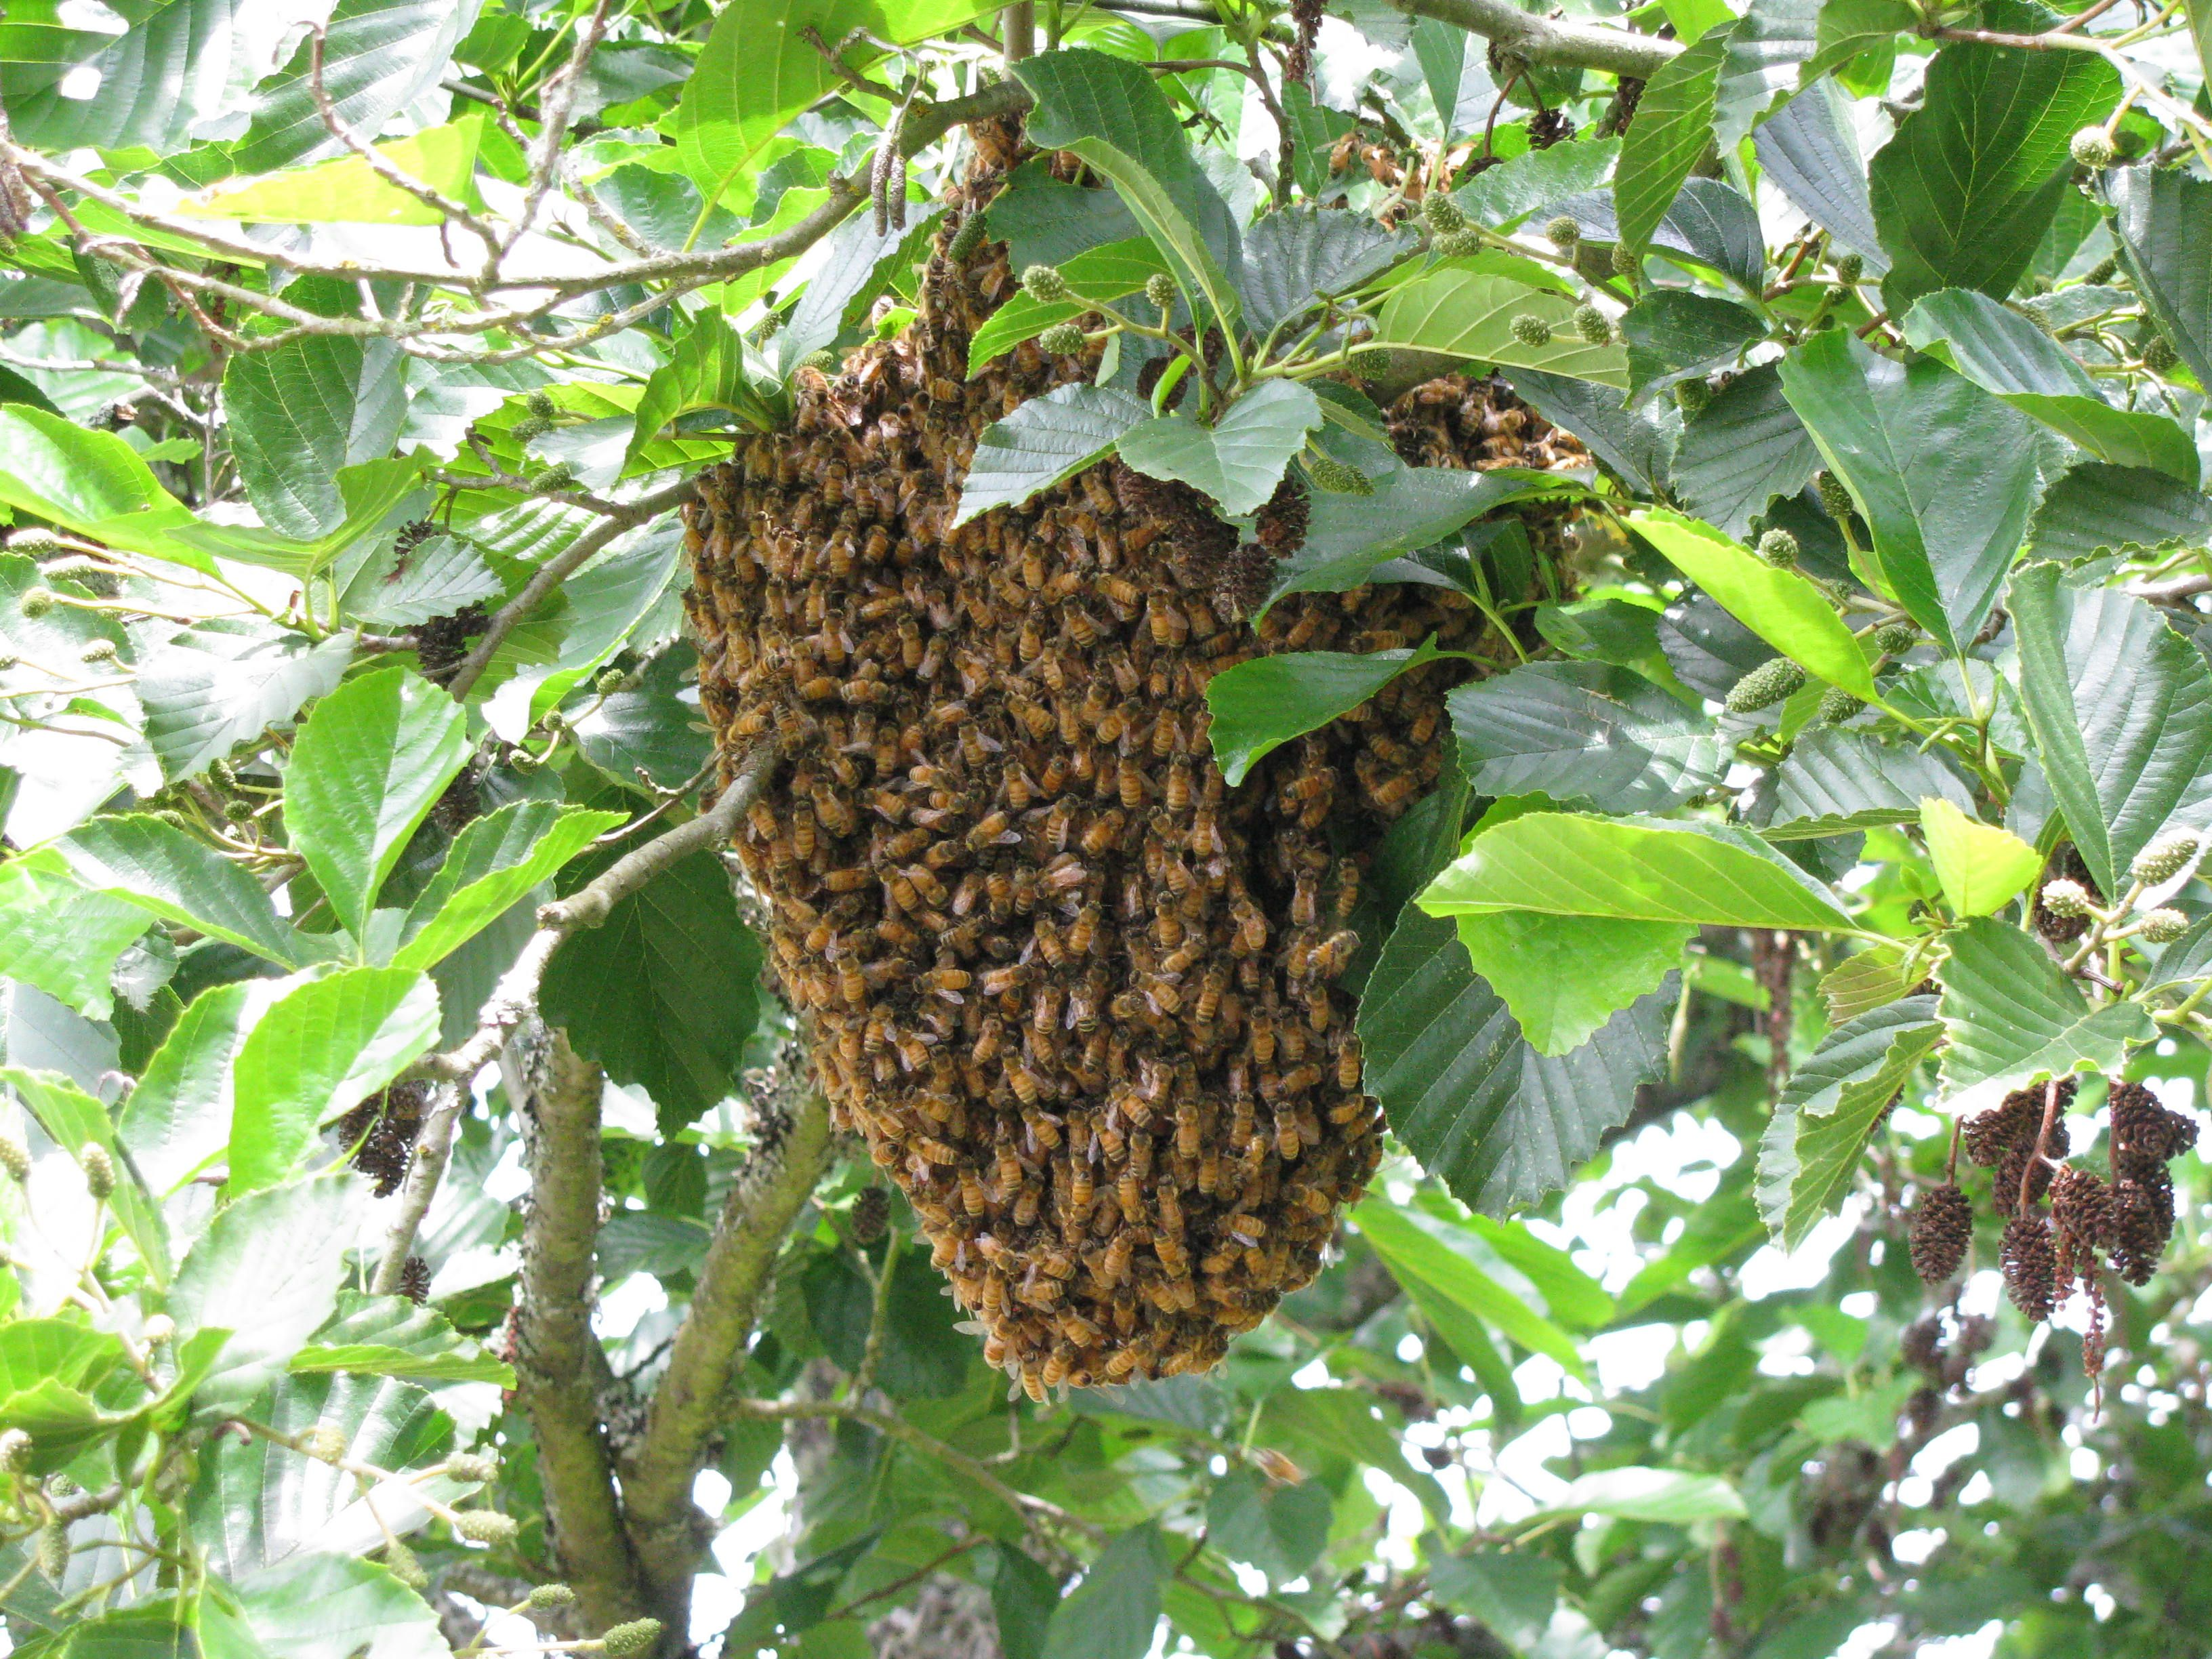 a honey bee swarm occurs when a queen bee leaves the hive and